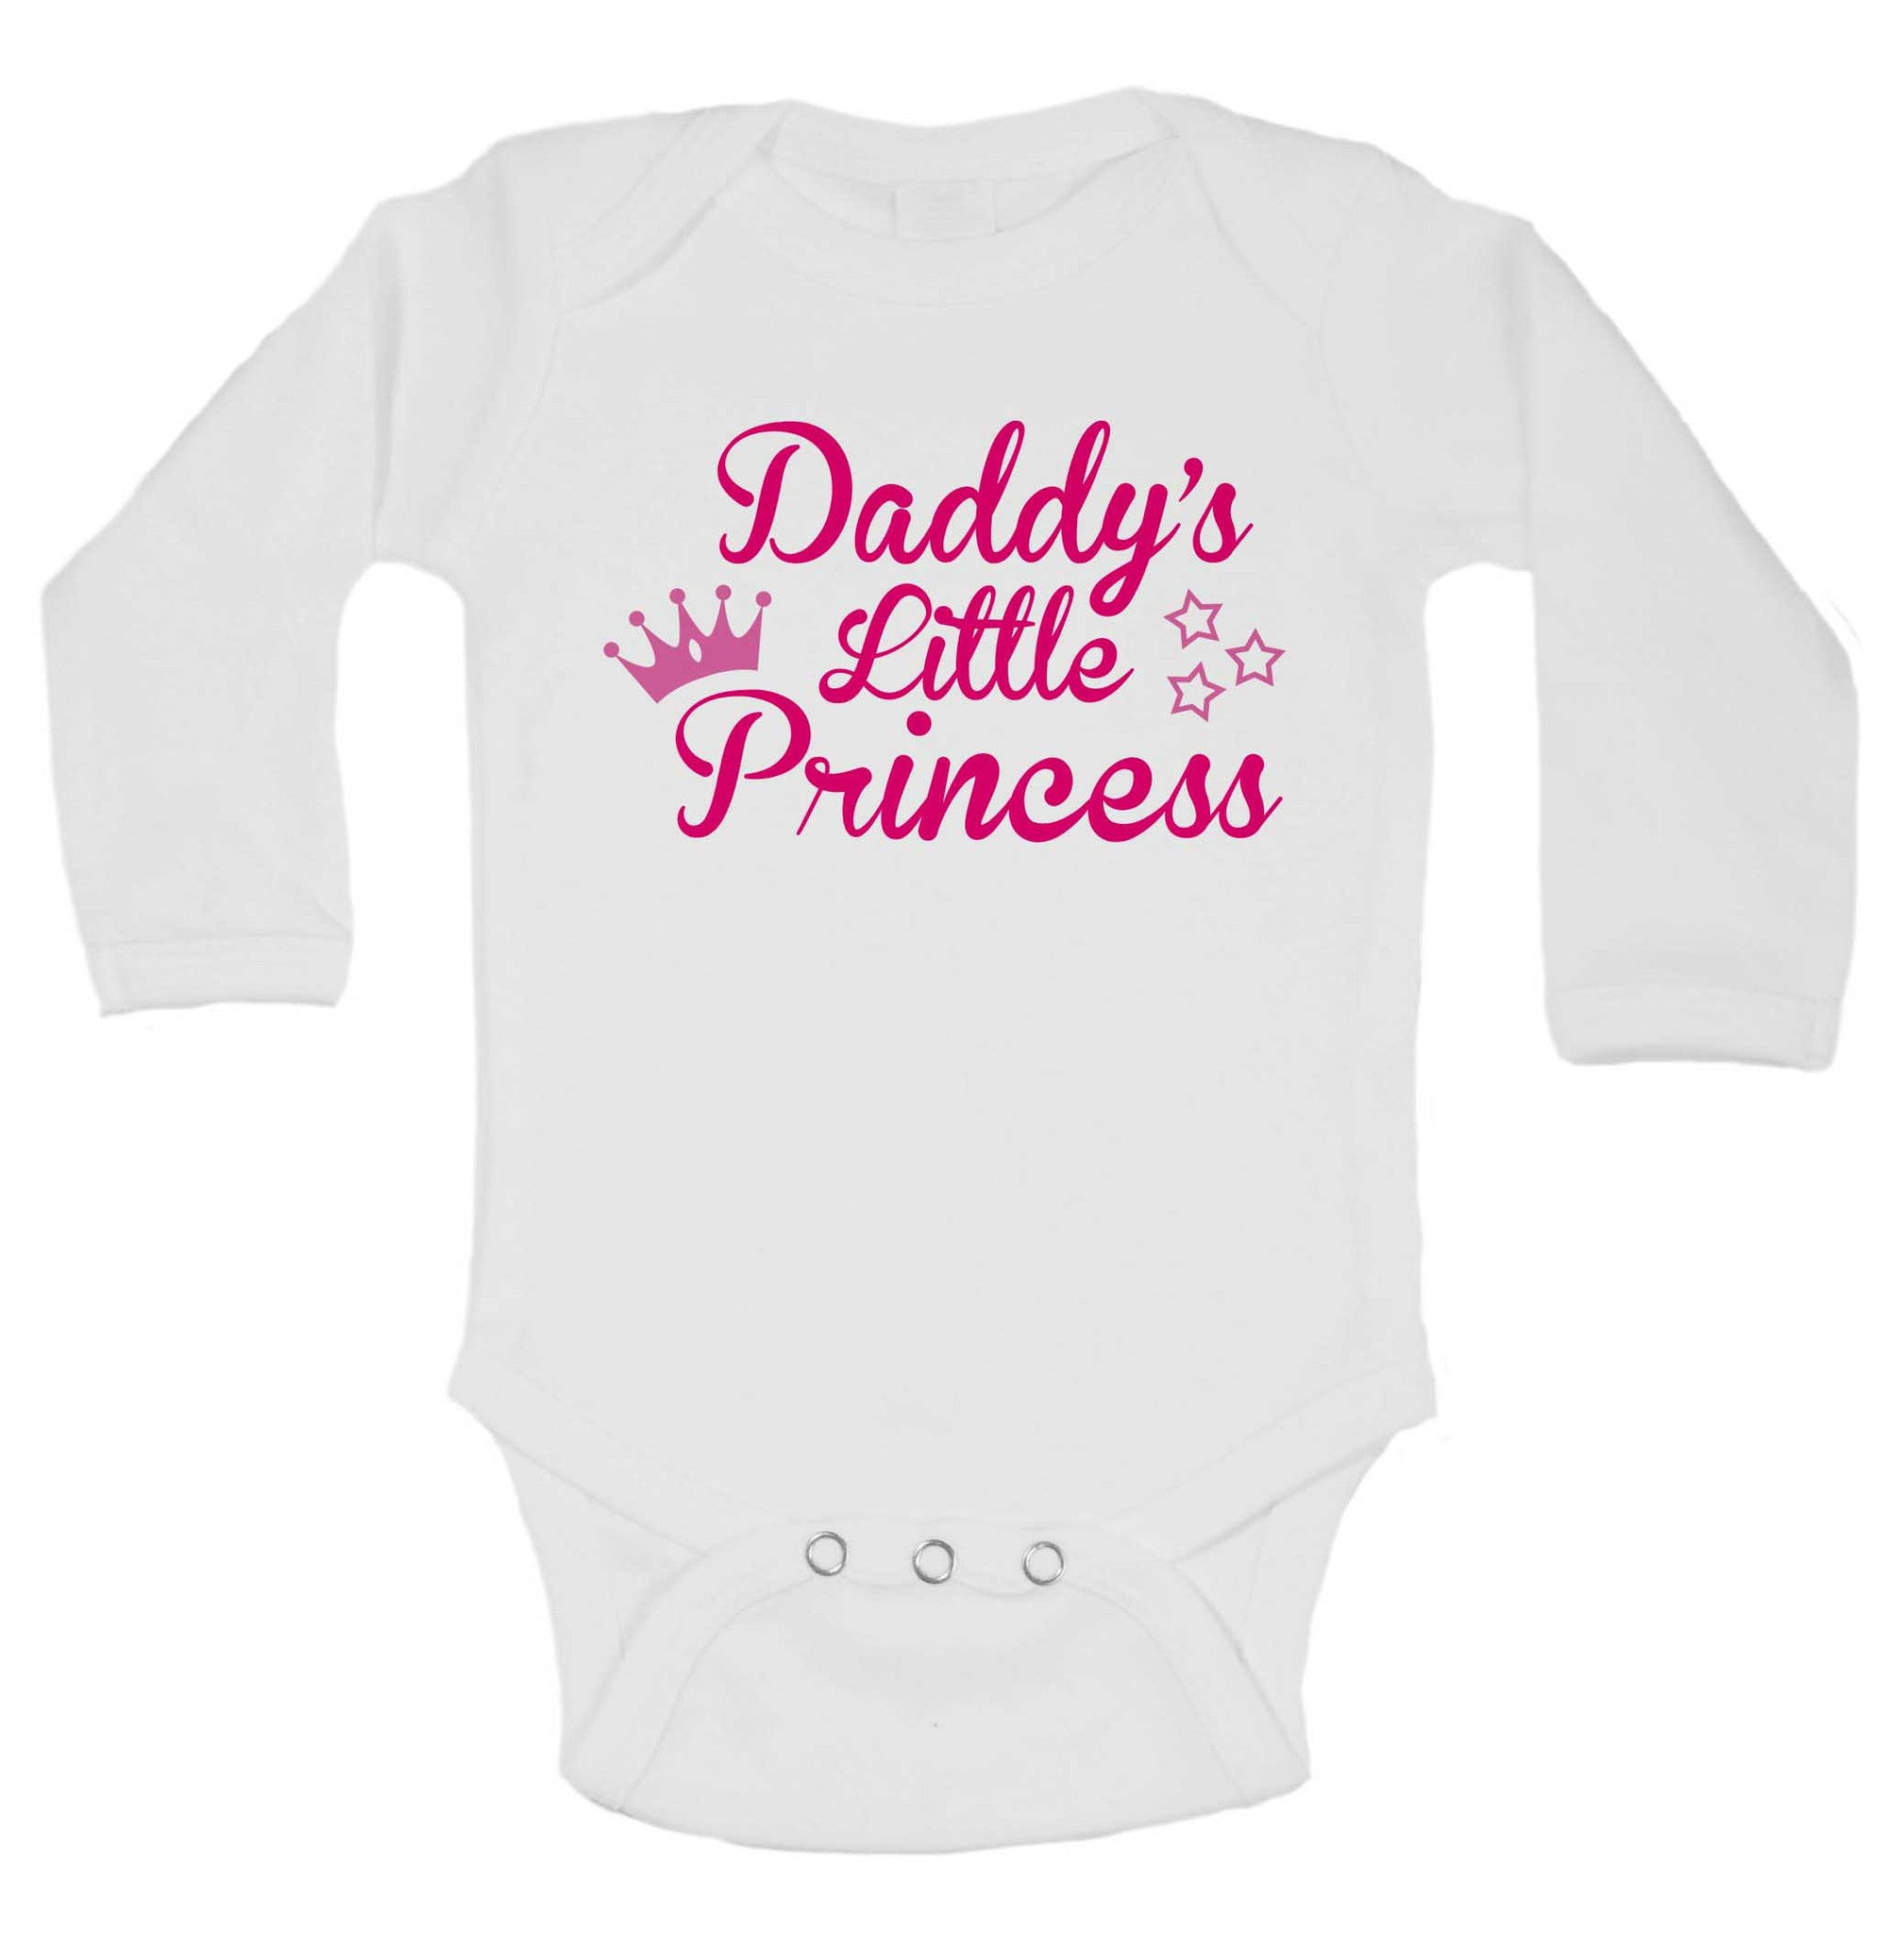 Daddy's Little Princess Funny Kids Onesie - 190 - Funny Shirts Tank Tops Burnouts and Triblends  - 1